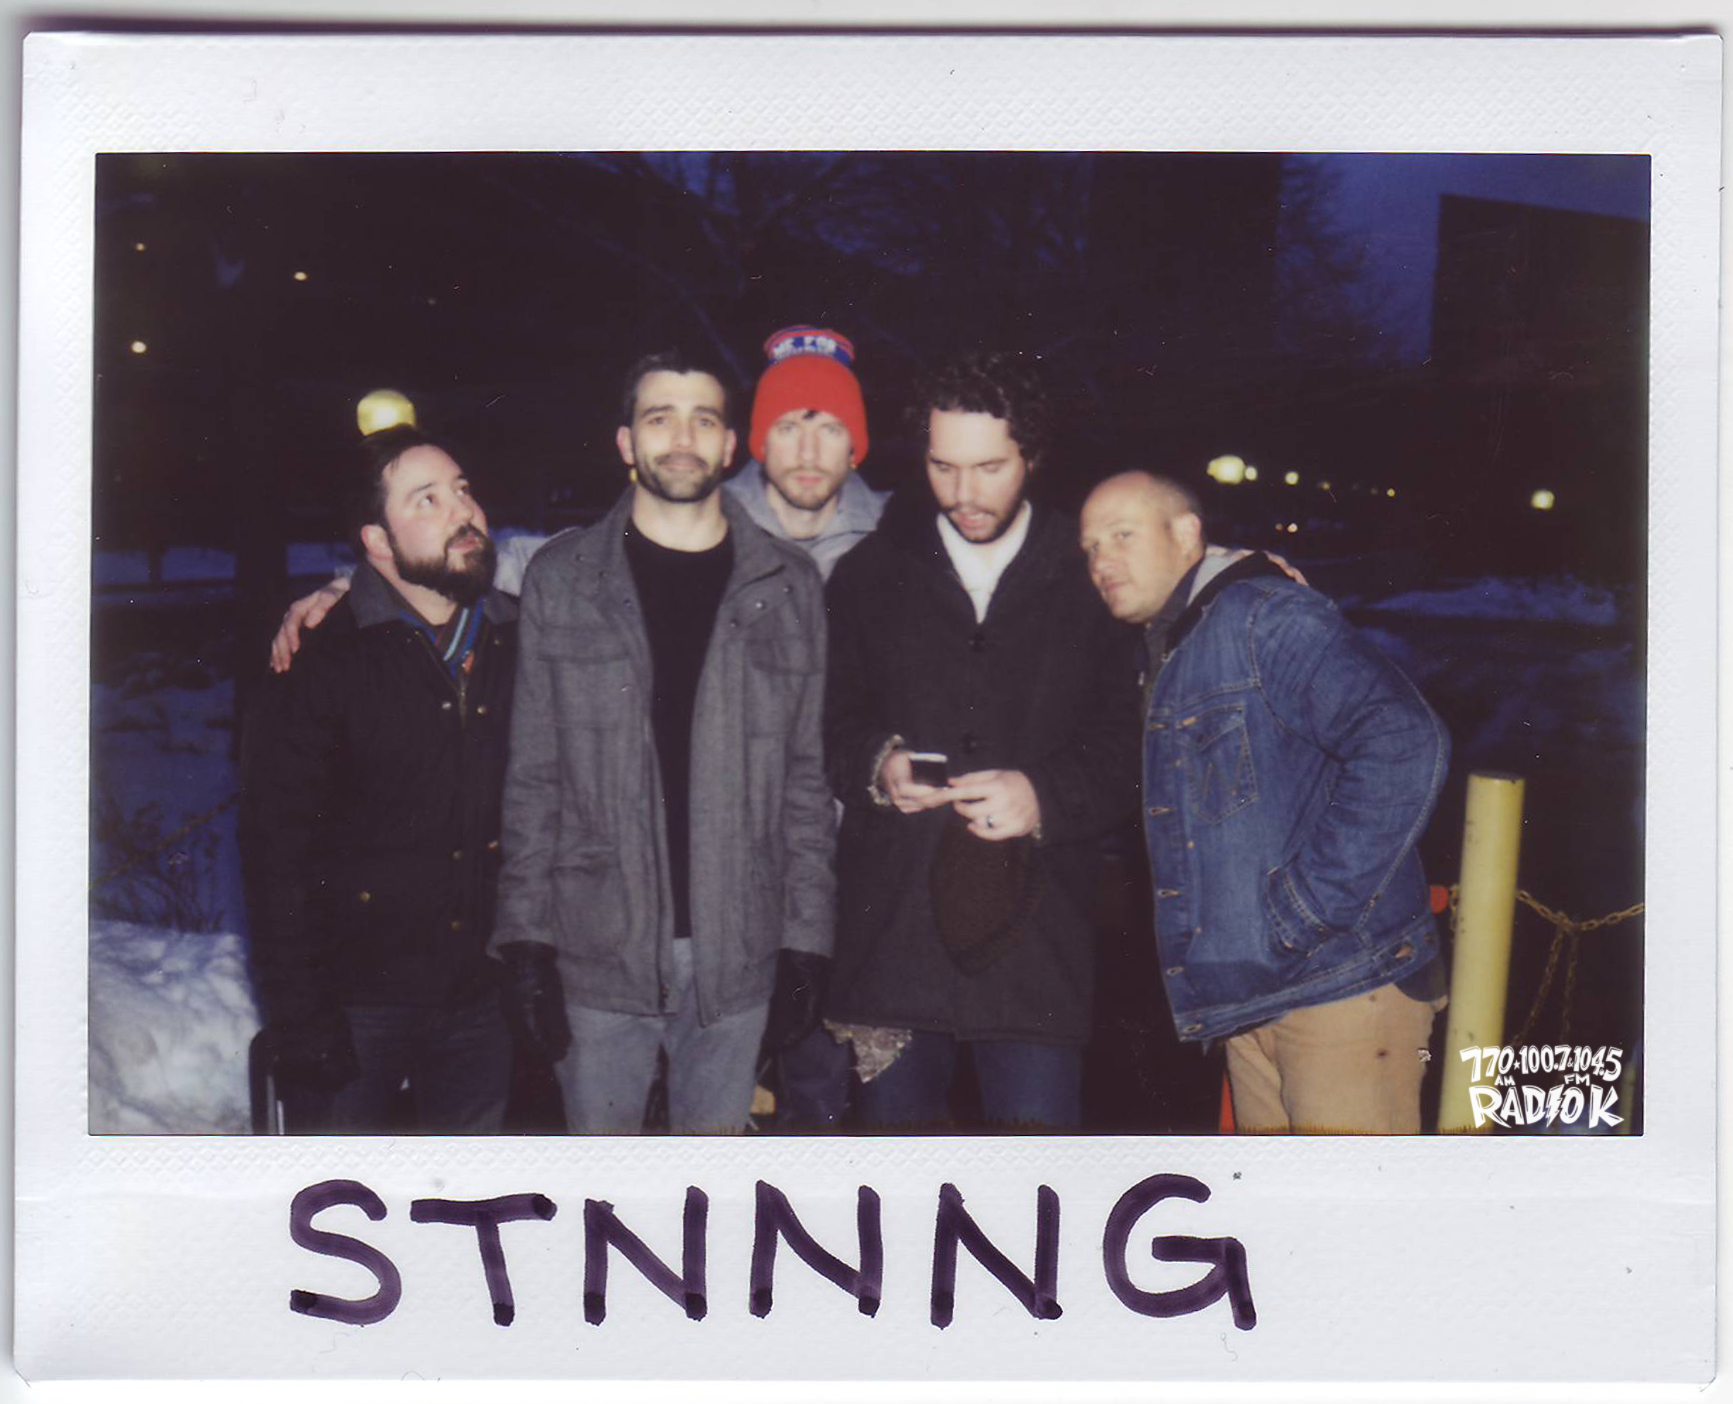 STNNNG Radio K In-Studio Polaroid